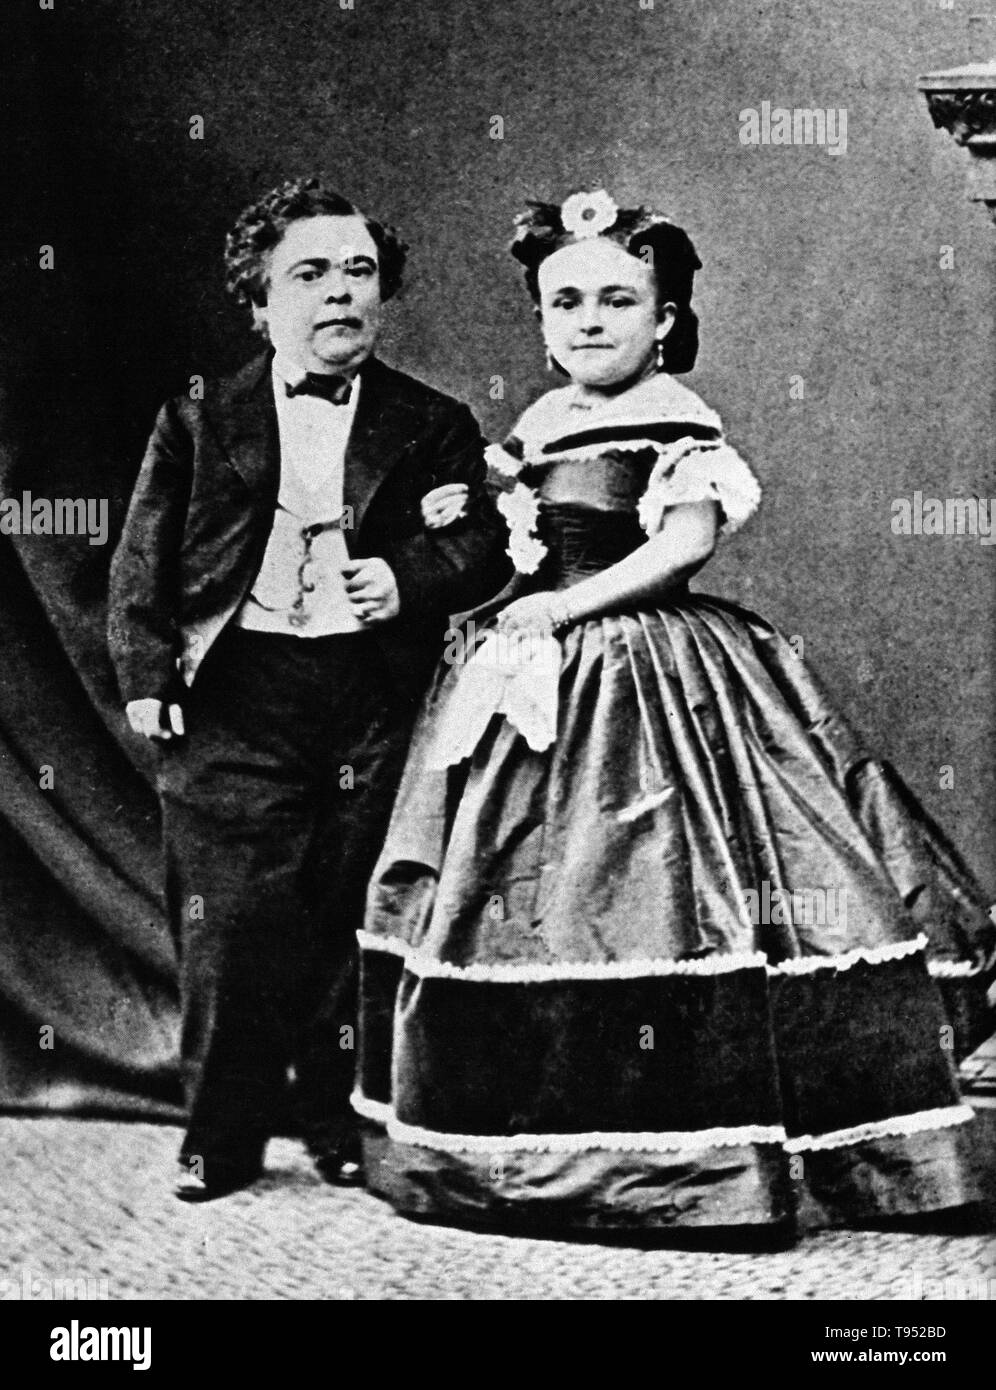 Charles Sherwood Stratton (January 4, 1838 - July 15, 1883), 'General Tom Thumb', was an American dwarf performer. P.T. Barnum, a distant relative (half fifth cousin, twice removed), heard about Stratton and after contacting his parents, taught the boy how to sing, dance, mime, and impersonate famous people. Barnum took young Stratton on a tour of Europe, making him an international celebrity. His marriage with a little person, Lavinia Warren (October 31, 1842 - November 25, 1919), became front-page news. The wedding took place at Grace Episcopal Church and the wedding reception was held at th - Stock Image